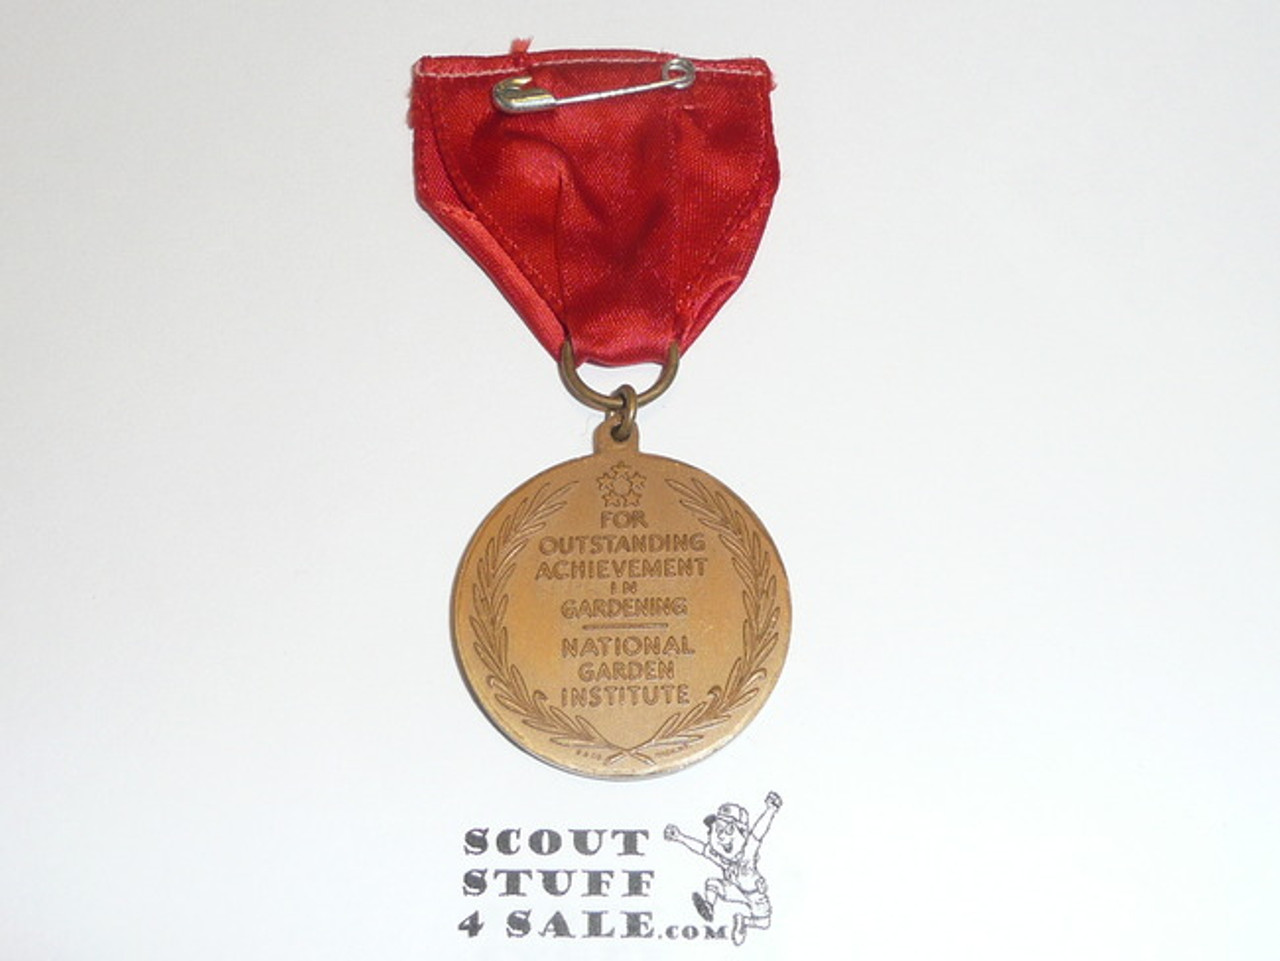 WWII Macarthur Garden Award Medal, Red RIbbon